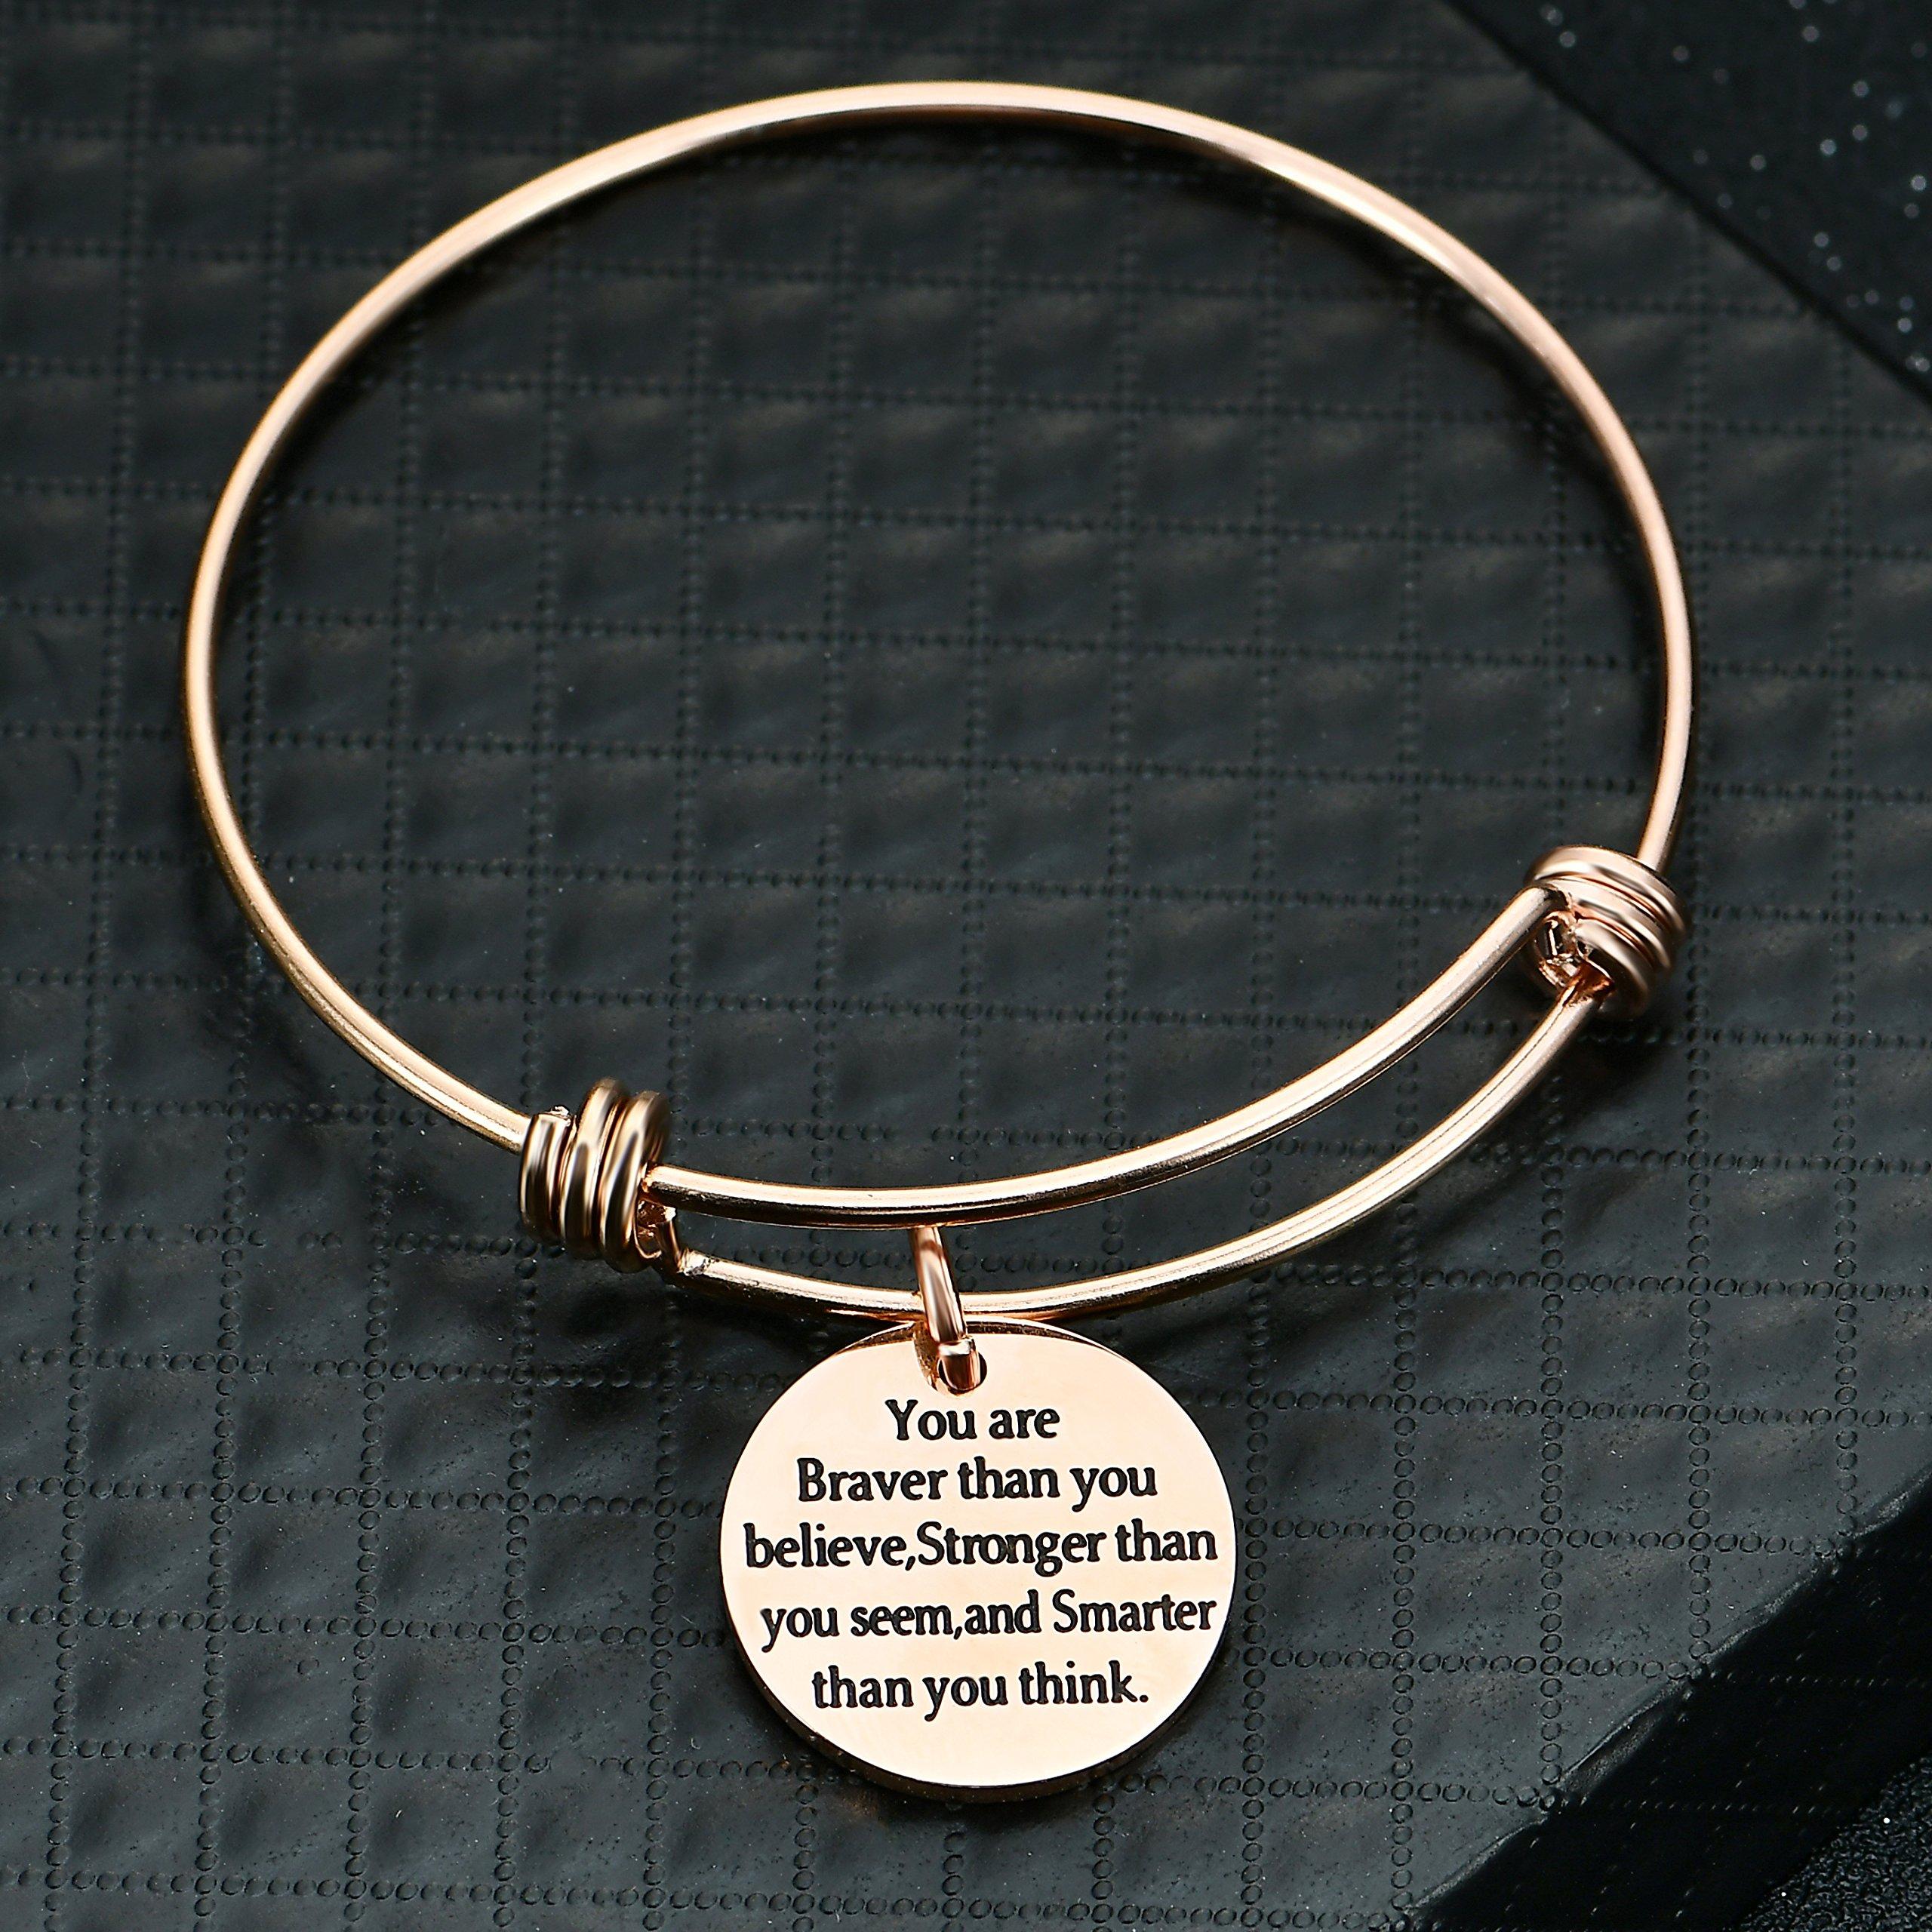 lauhonmin You are Braver Stronger Smarter than you think Inspirational Bracelet Expandable Bangle Gift for Women Men (Rose Gold Color Stainless Steel) by lauhonmin (Image #5)